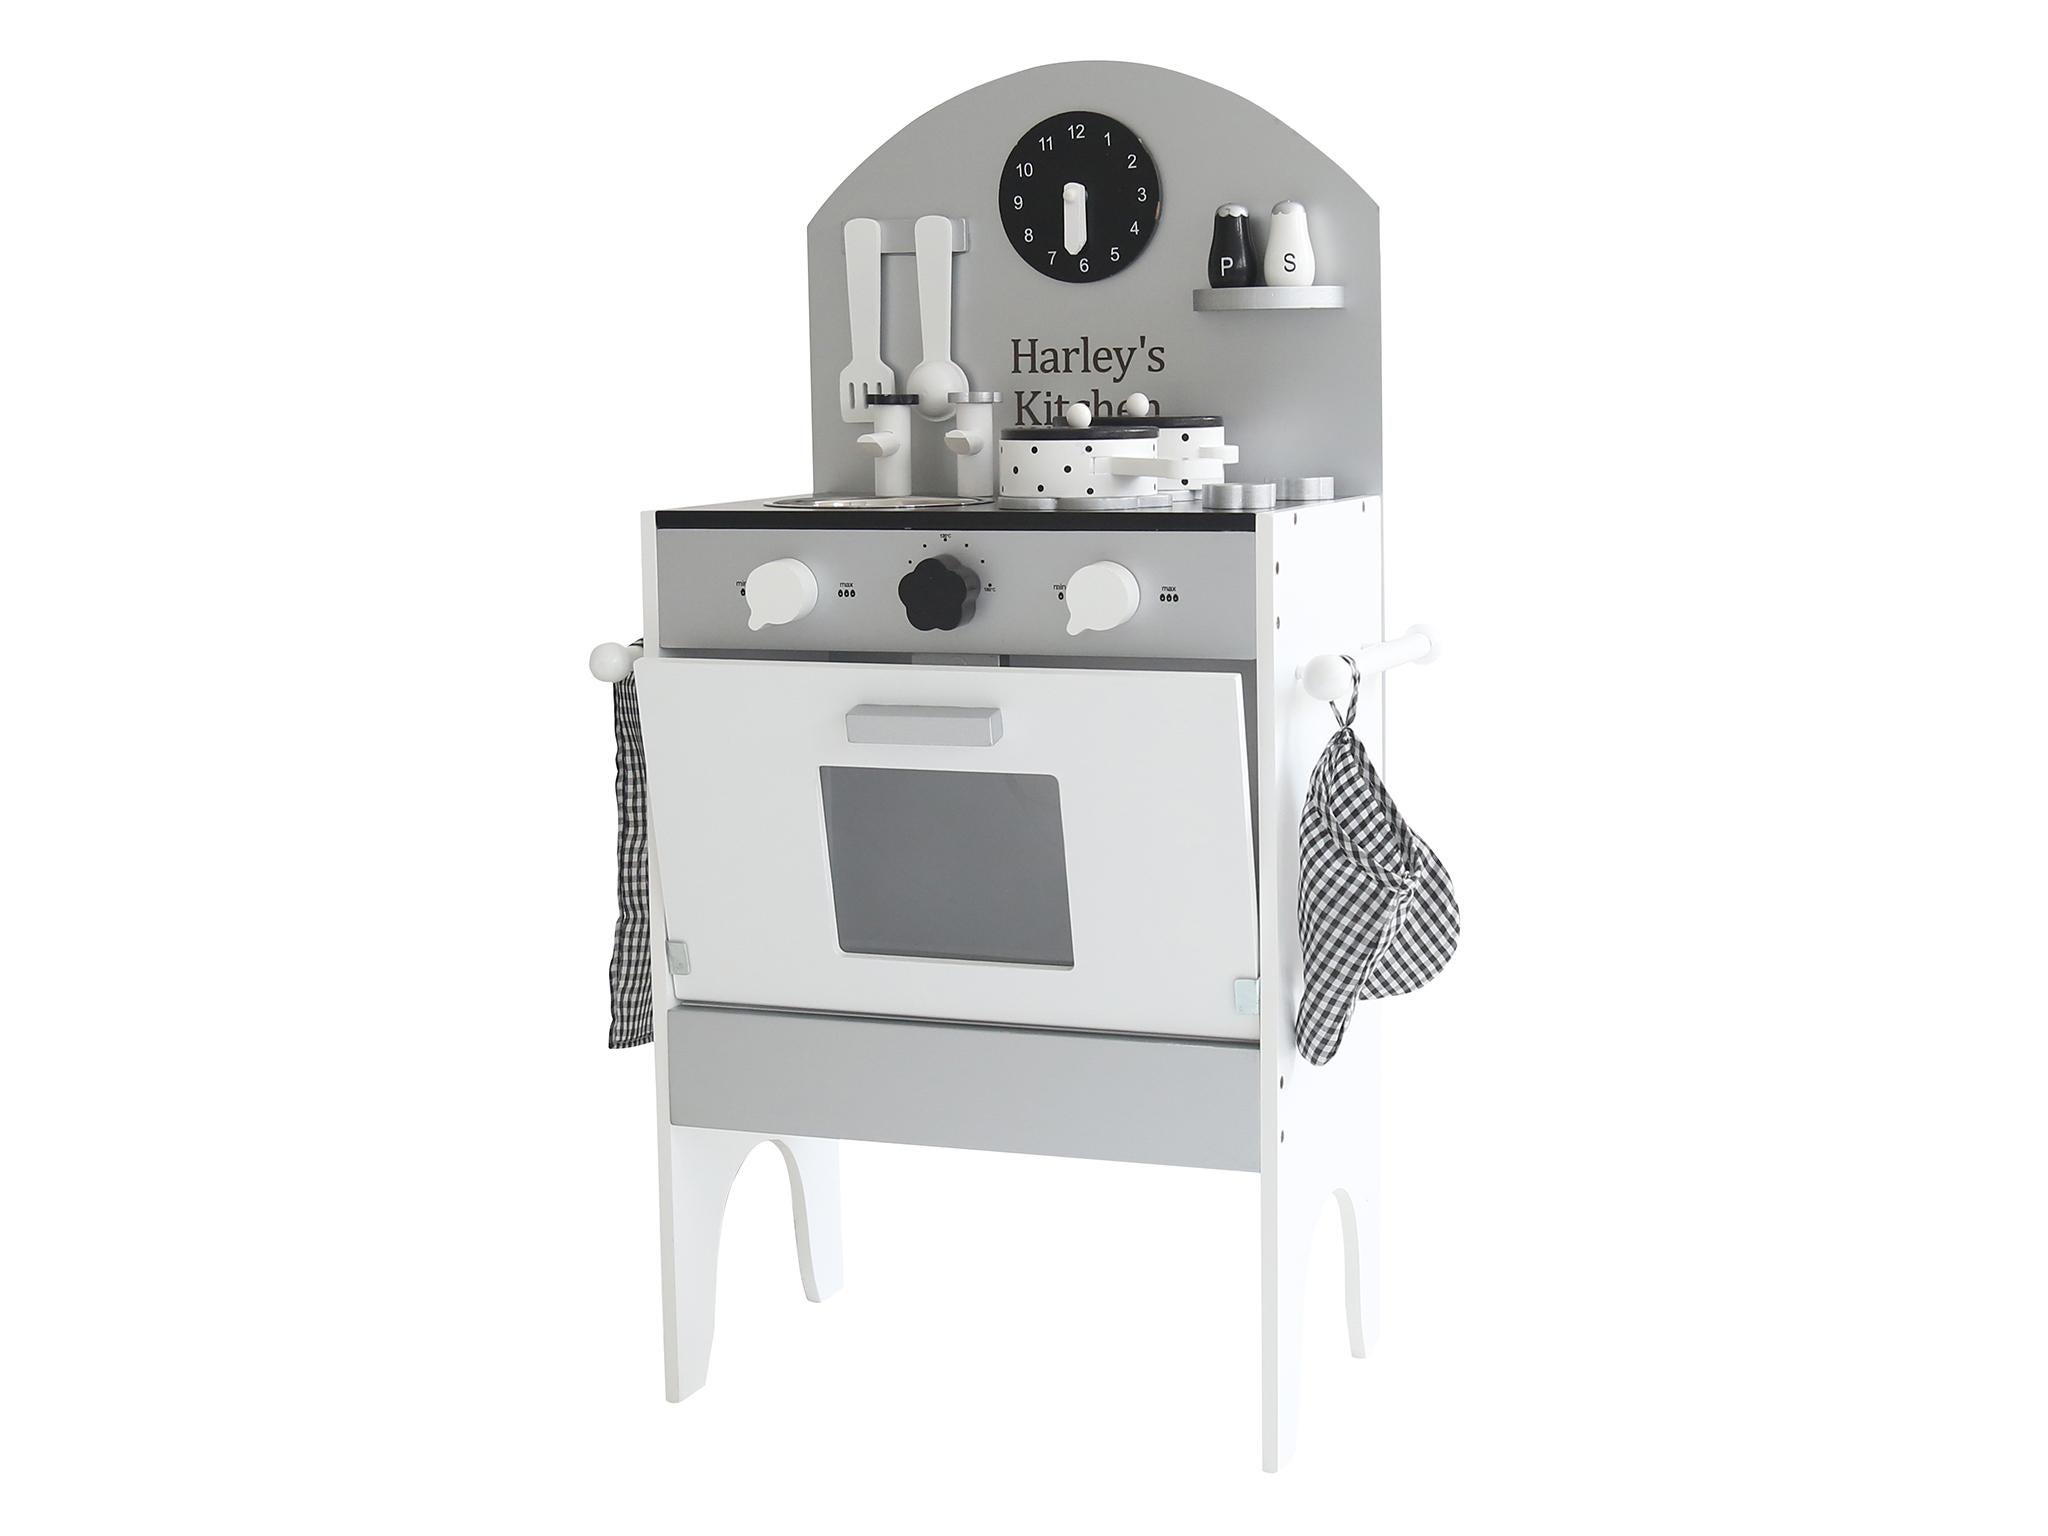 10 best play kitchens | The Independent Play Kitchen Ideas Html on play house ideas, home ideas, play garden ideas, play garage ideas, pretend play ideas, play loft ideas, play business ideas, outdoor play ideas, play kitchens for girls, play food ideas, doll play ideas, play room ideas, cozy coupe ideas, father's day ideas, hot wheels ideas, refrigerator ideas, art ideas, play space ideas, ikea ideas, play pool ideas,